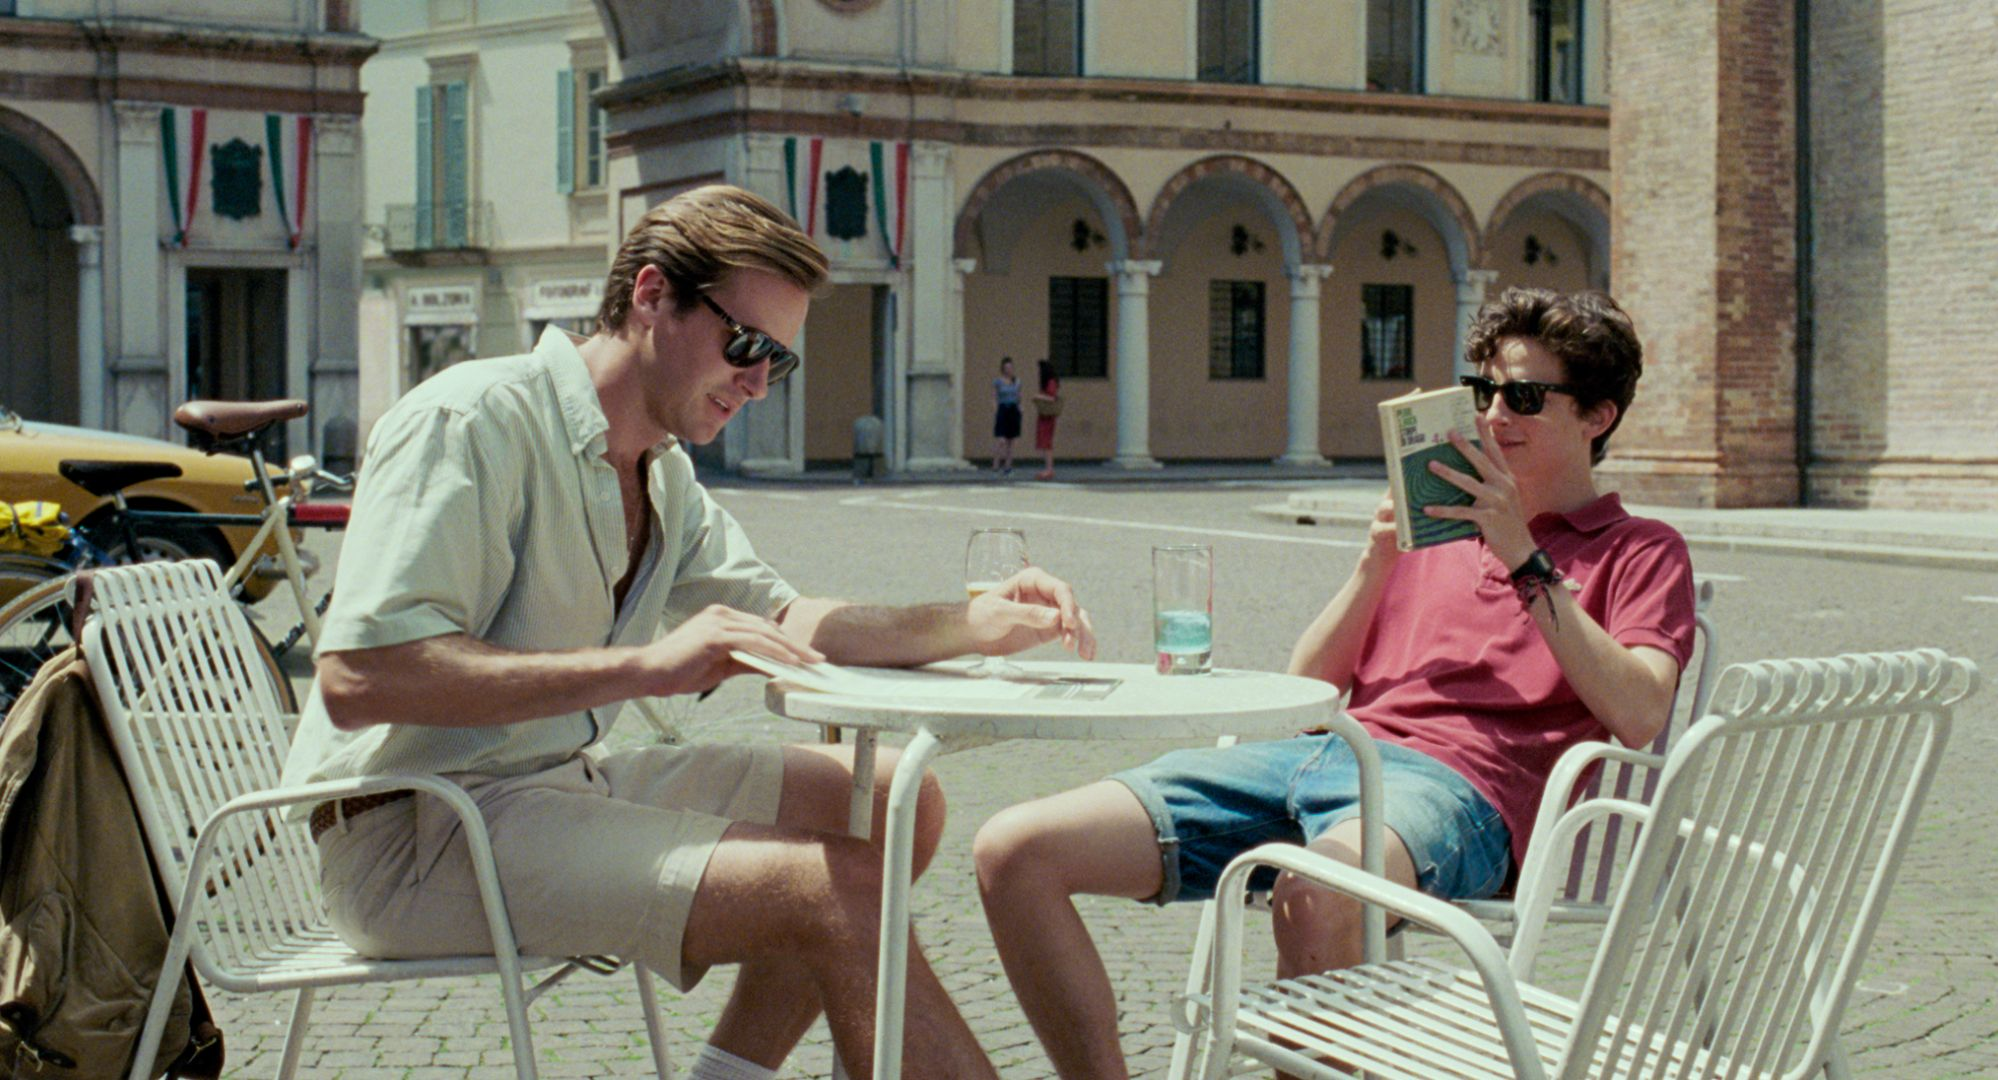 Inside The Screen The 80's Feeling In Call Me by Your Name 3